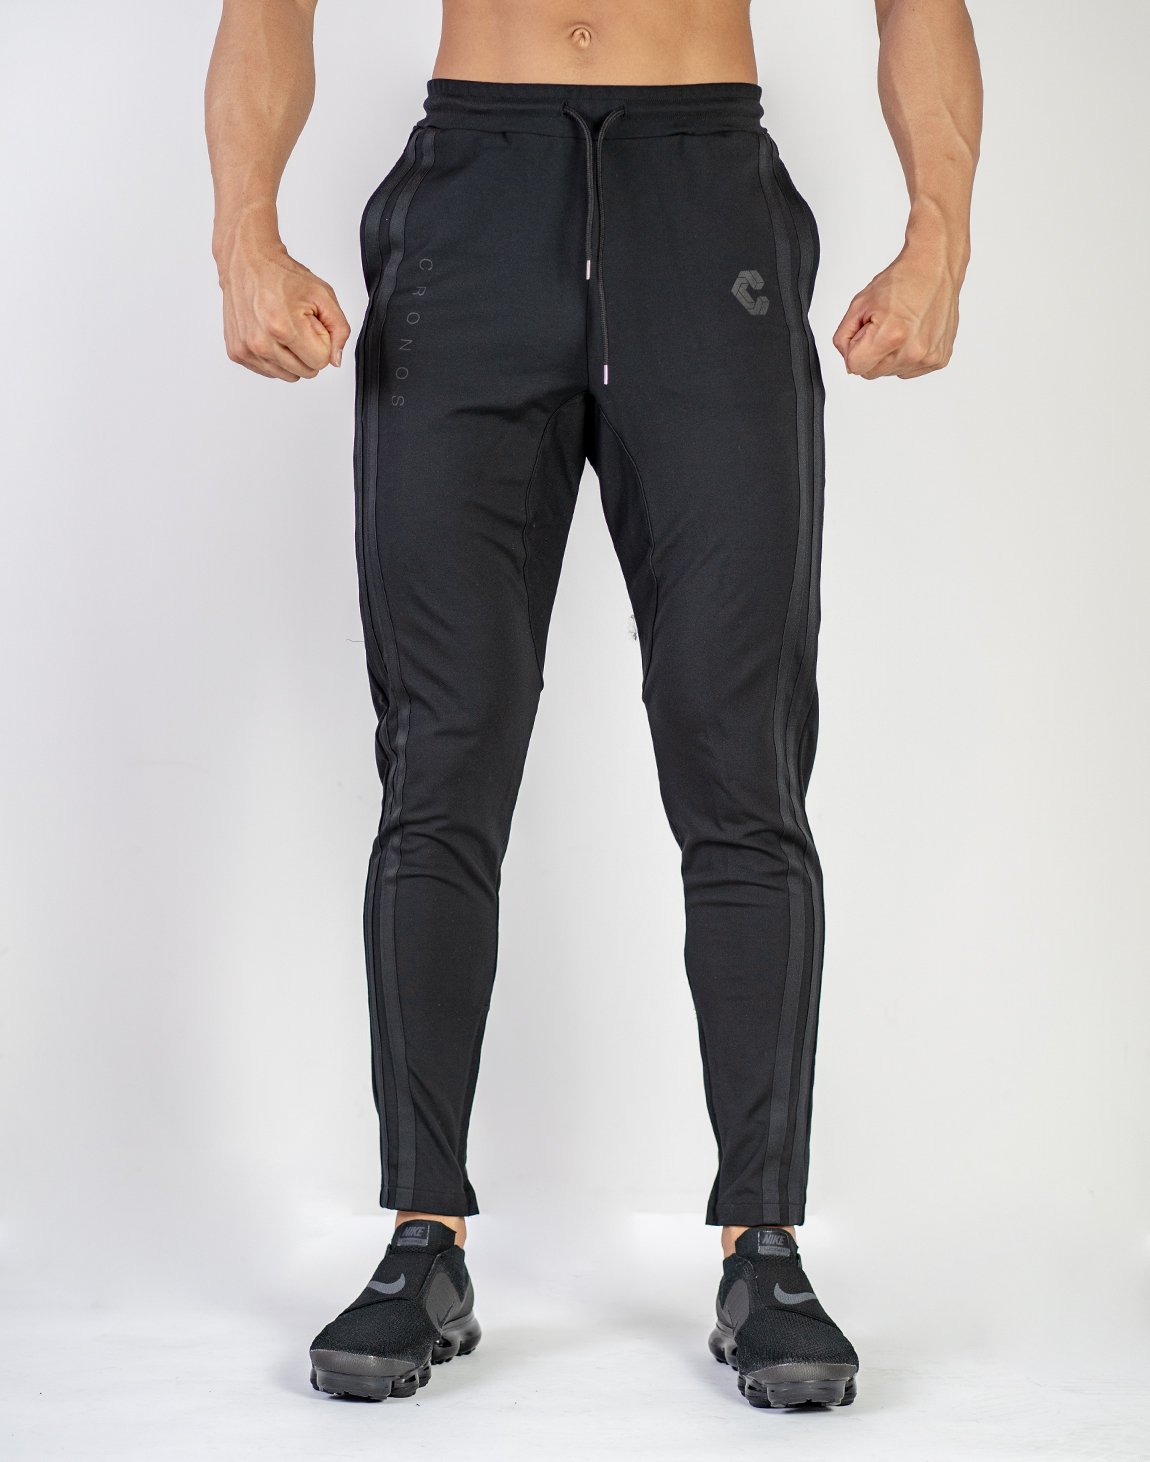 <img class='new_mark_img1' src='https://img.shop-pro.jp/img/new/icons1.gif' style='border:none;display:inline;margin:0px;padding:0px;width:auto;' />MODE  2STRIPE PANTS (SUMMER FABRIC)SP.BLACK